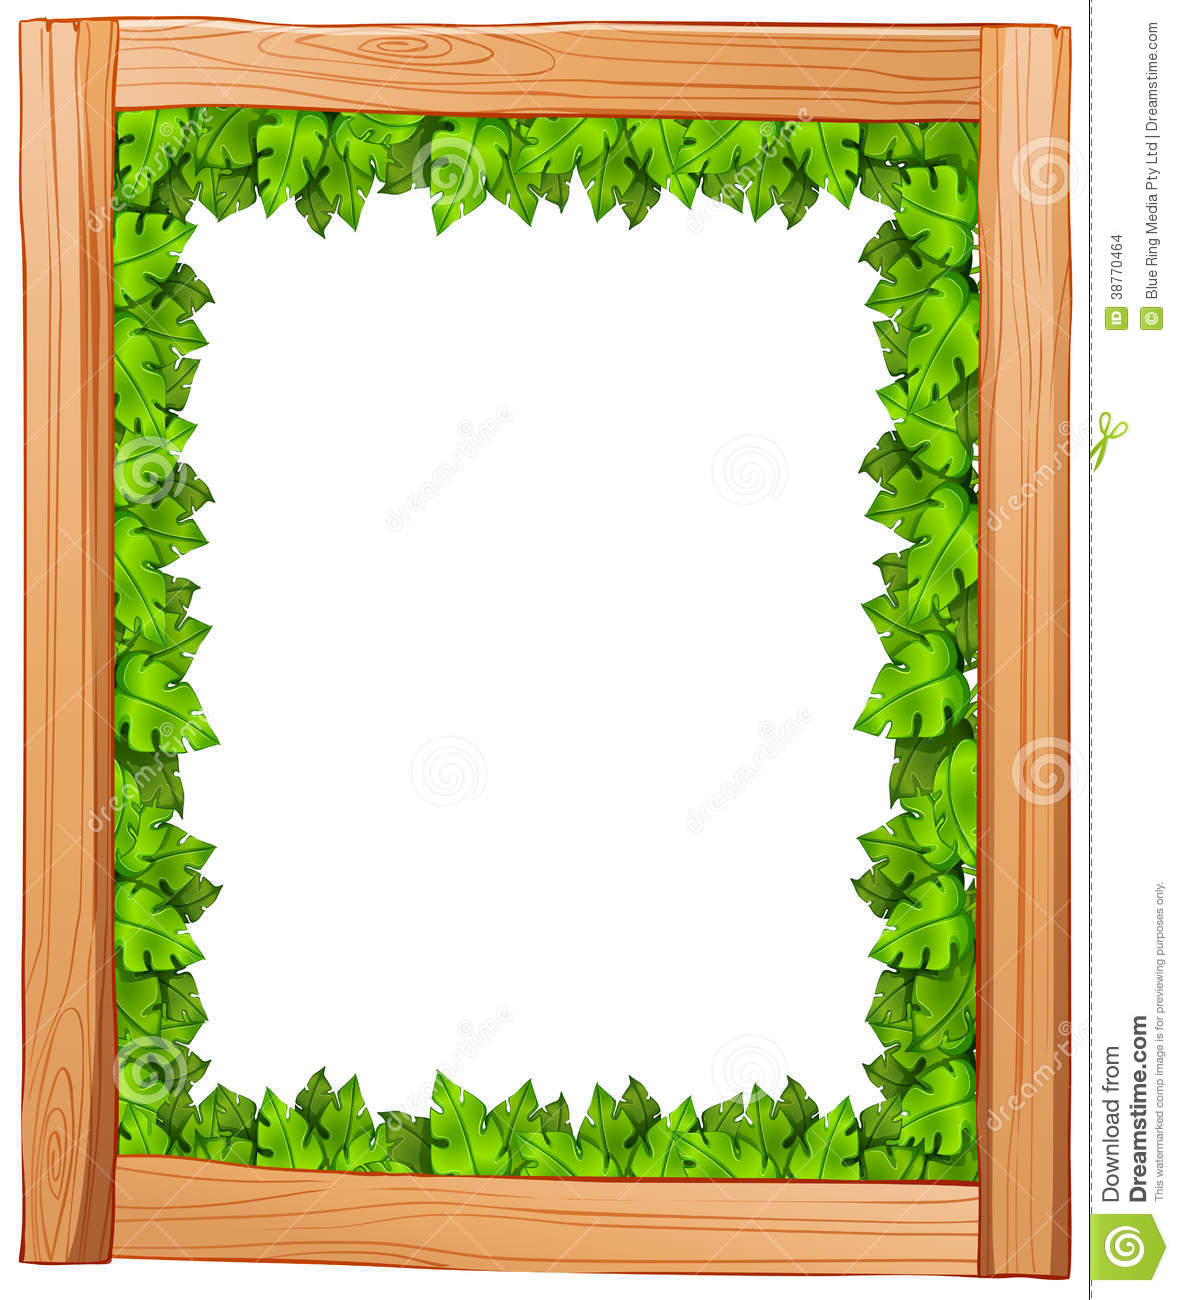 Houten Border A Border Design Made Of Wood And Green Leaves Stock Images